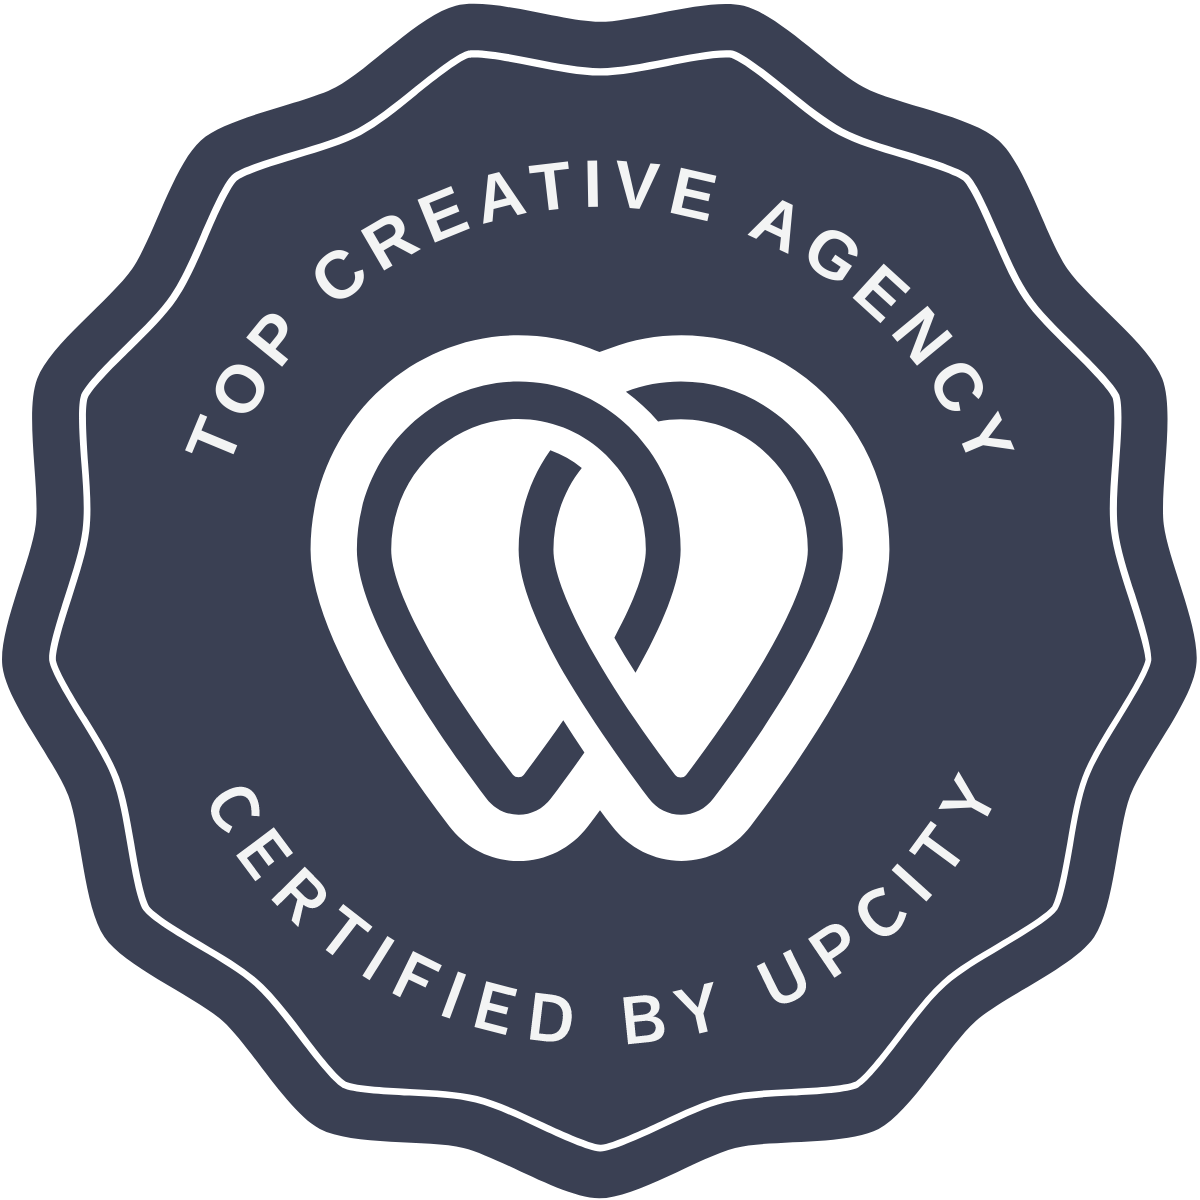 Top Creative Agency | Certified by UpCity | Clementine Creative Agency | Marietta Georgia